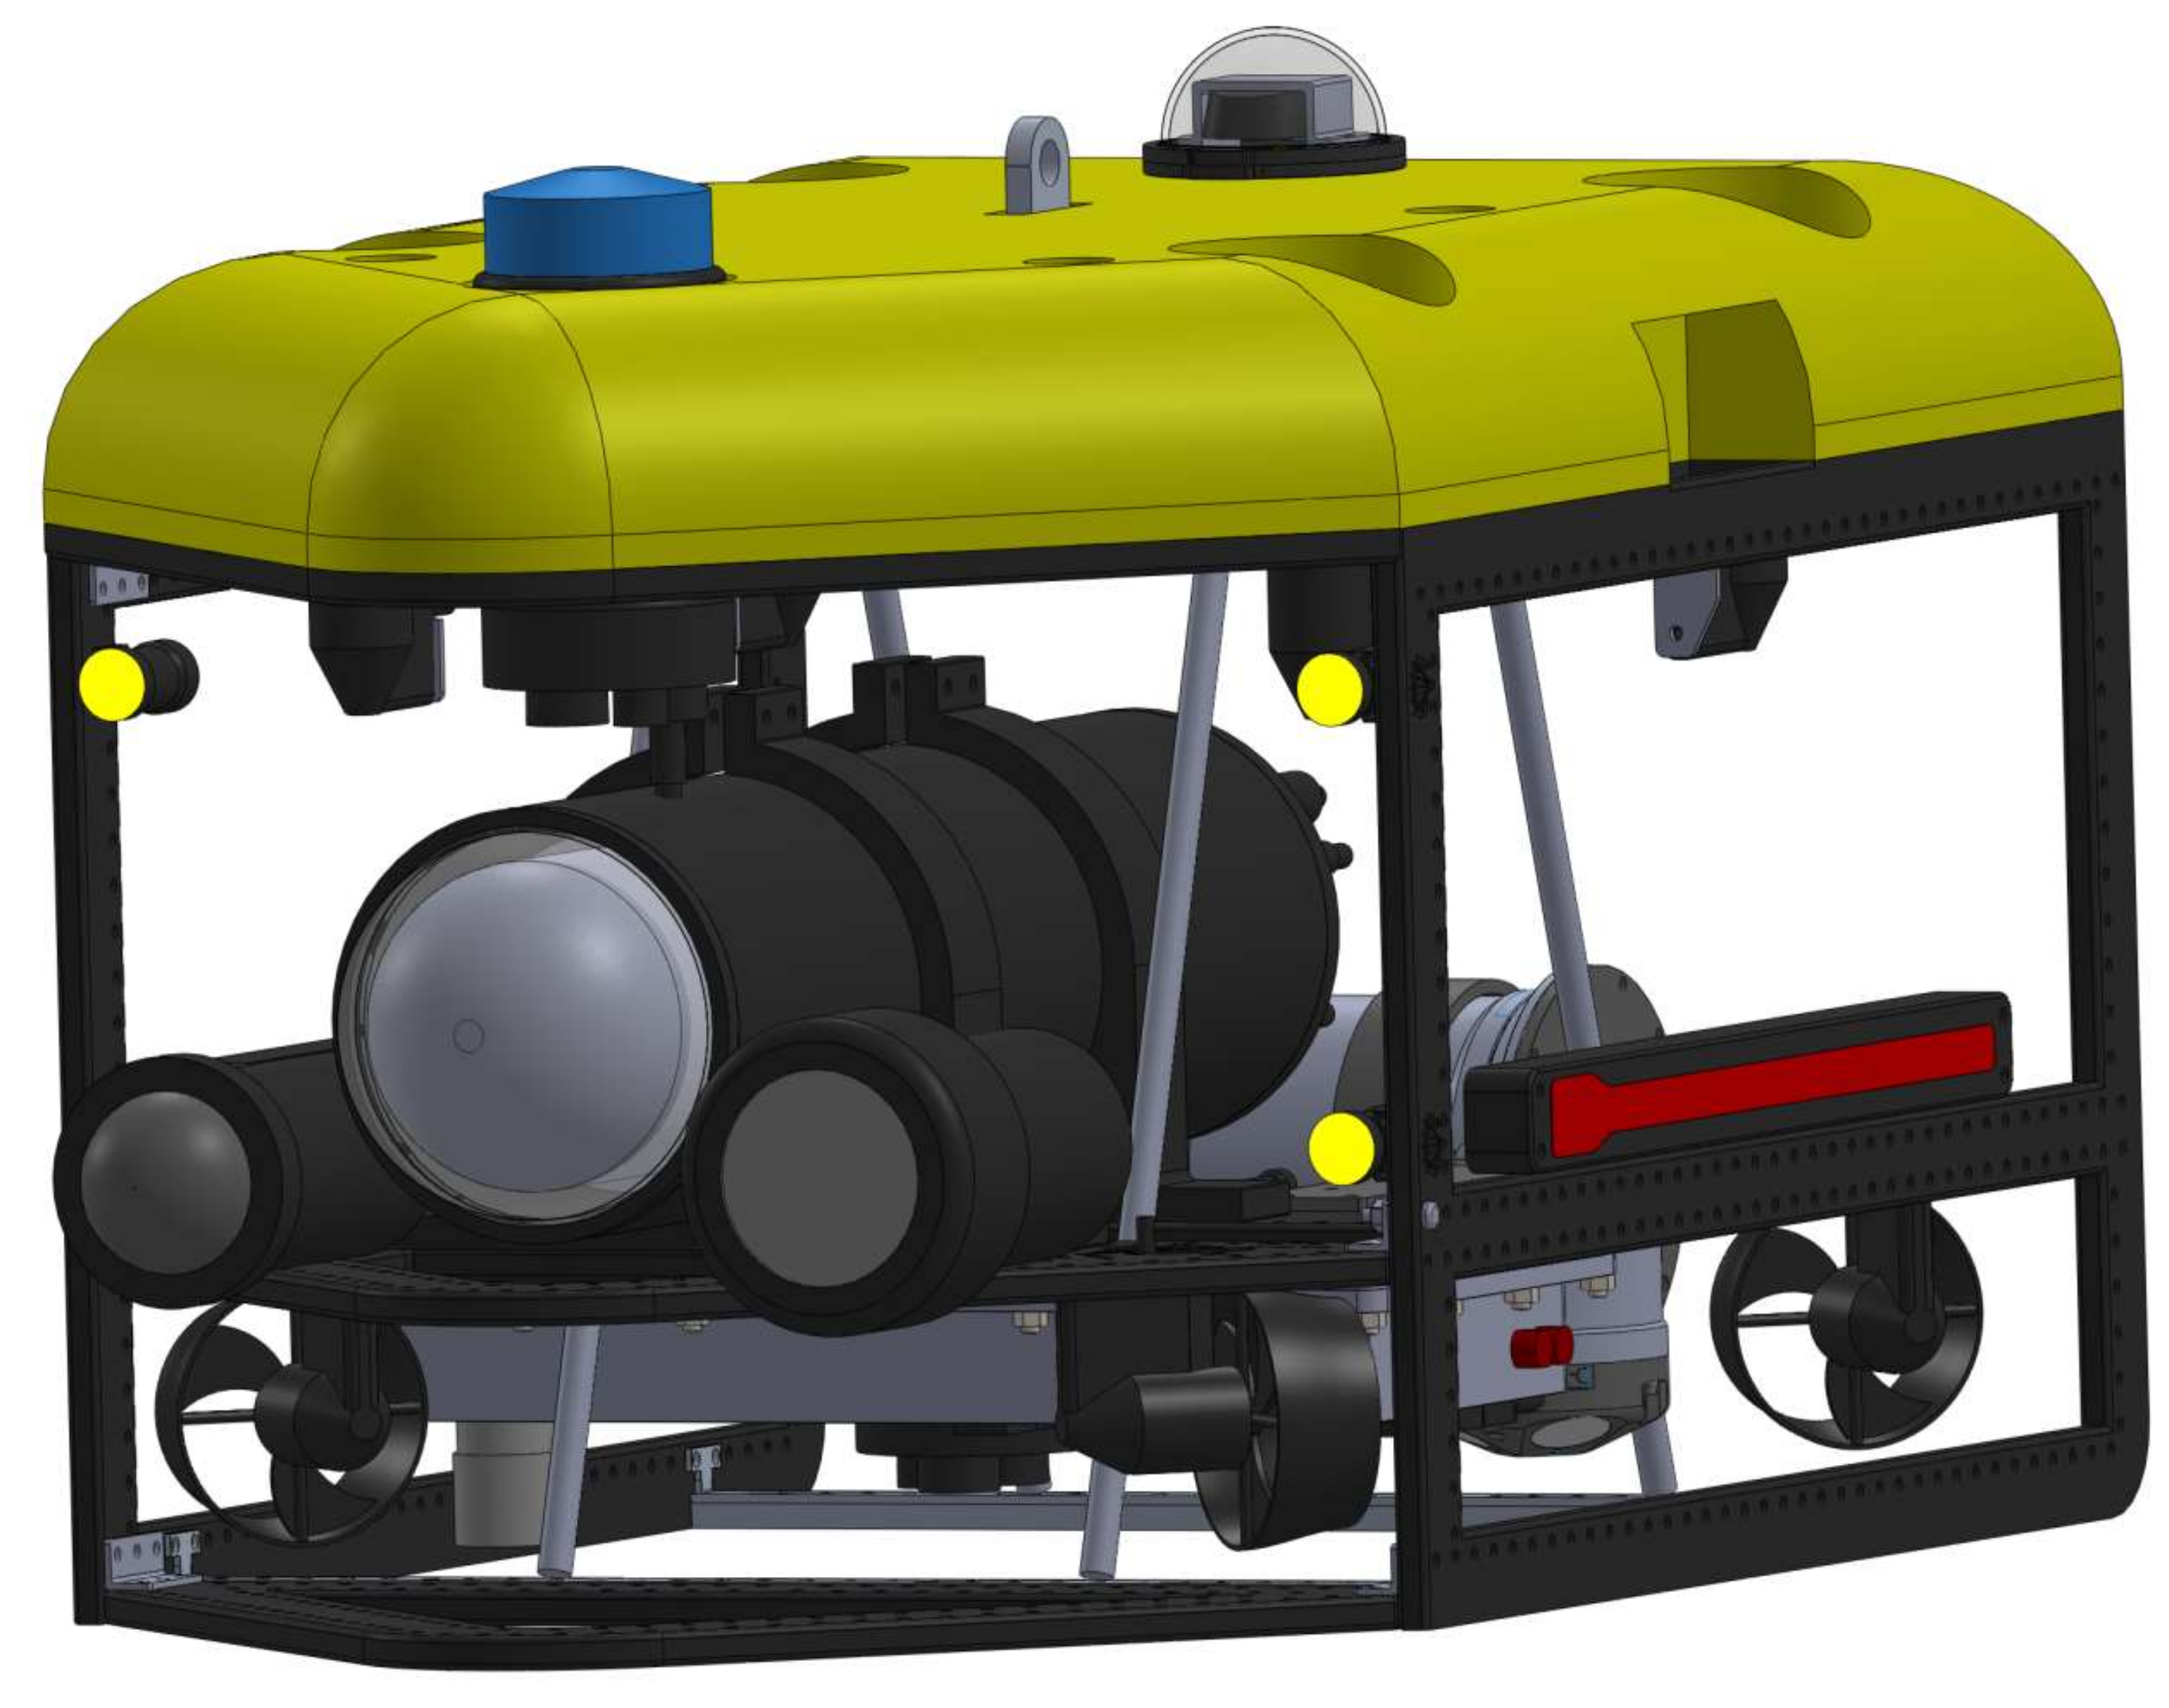 remotely operated vehicles A remotely operated underwater vehicle, commonly referred to as an rov, is a tethered underwater vehicle they are common in deep water industries such as offshore hydrocarbon extraction  while the traditional abbreviation rov stands for remotely operated vehicle , one must distinguish it from remote control vehicles operating on land or in.